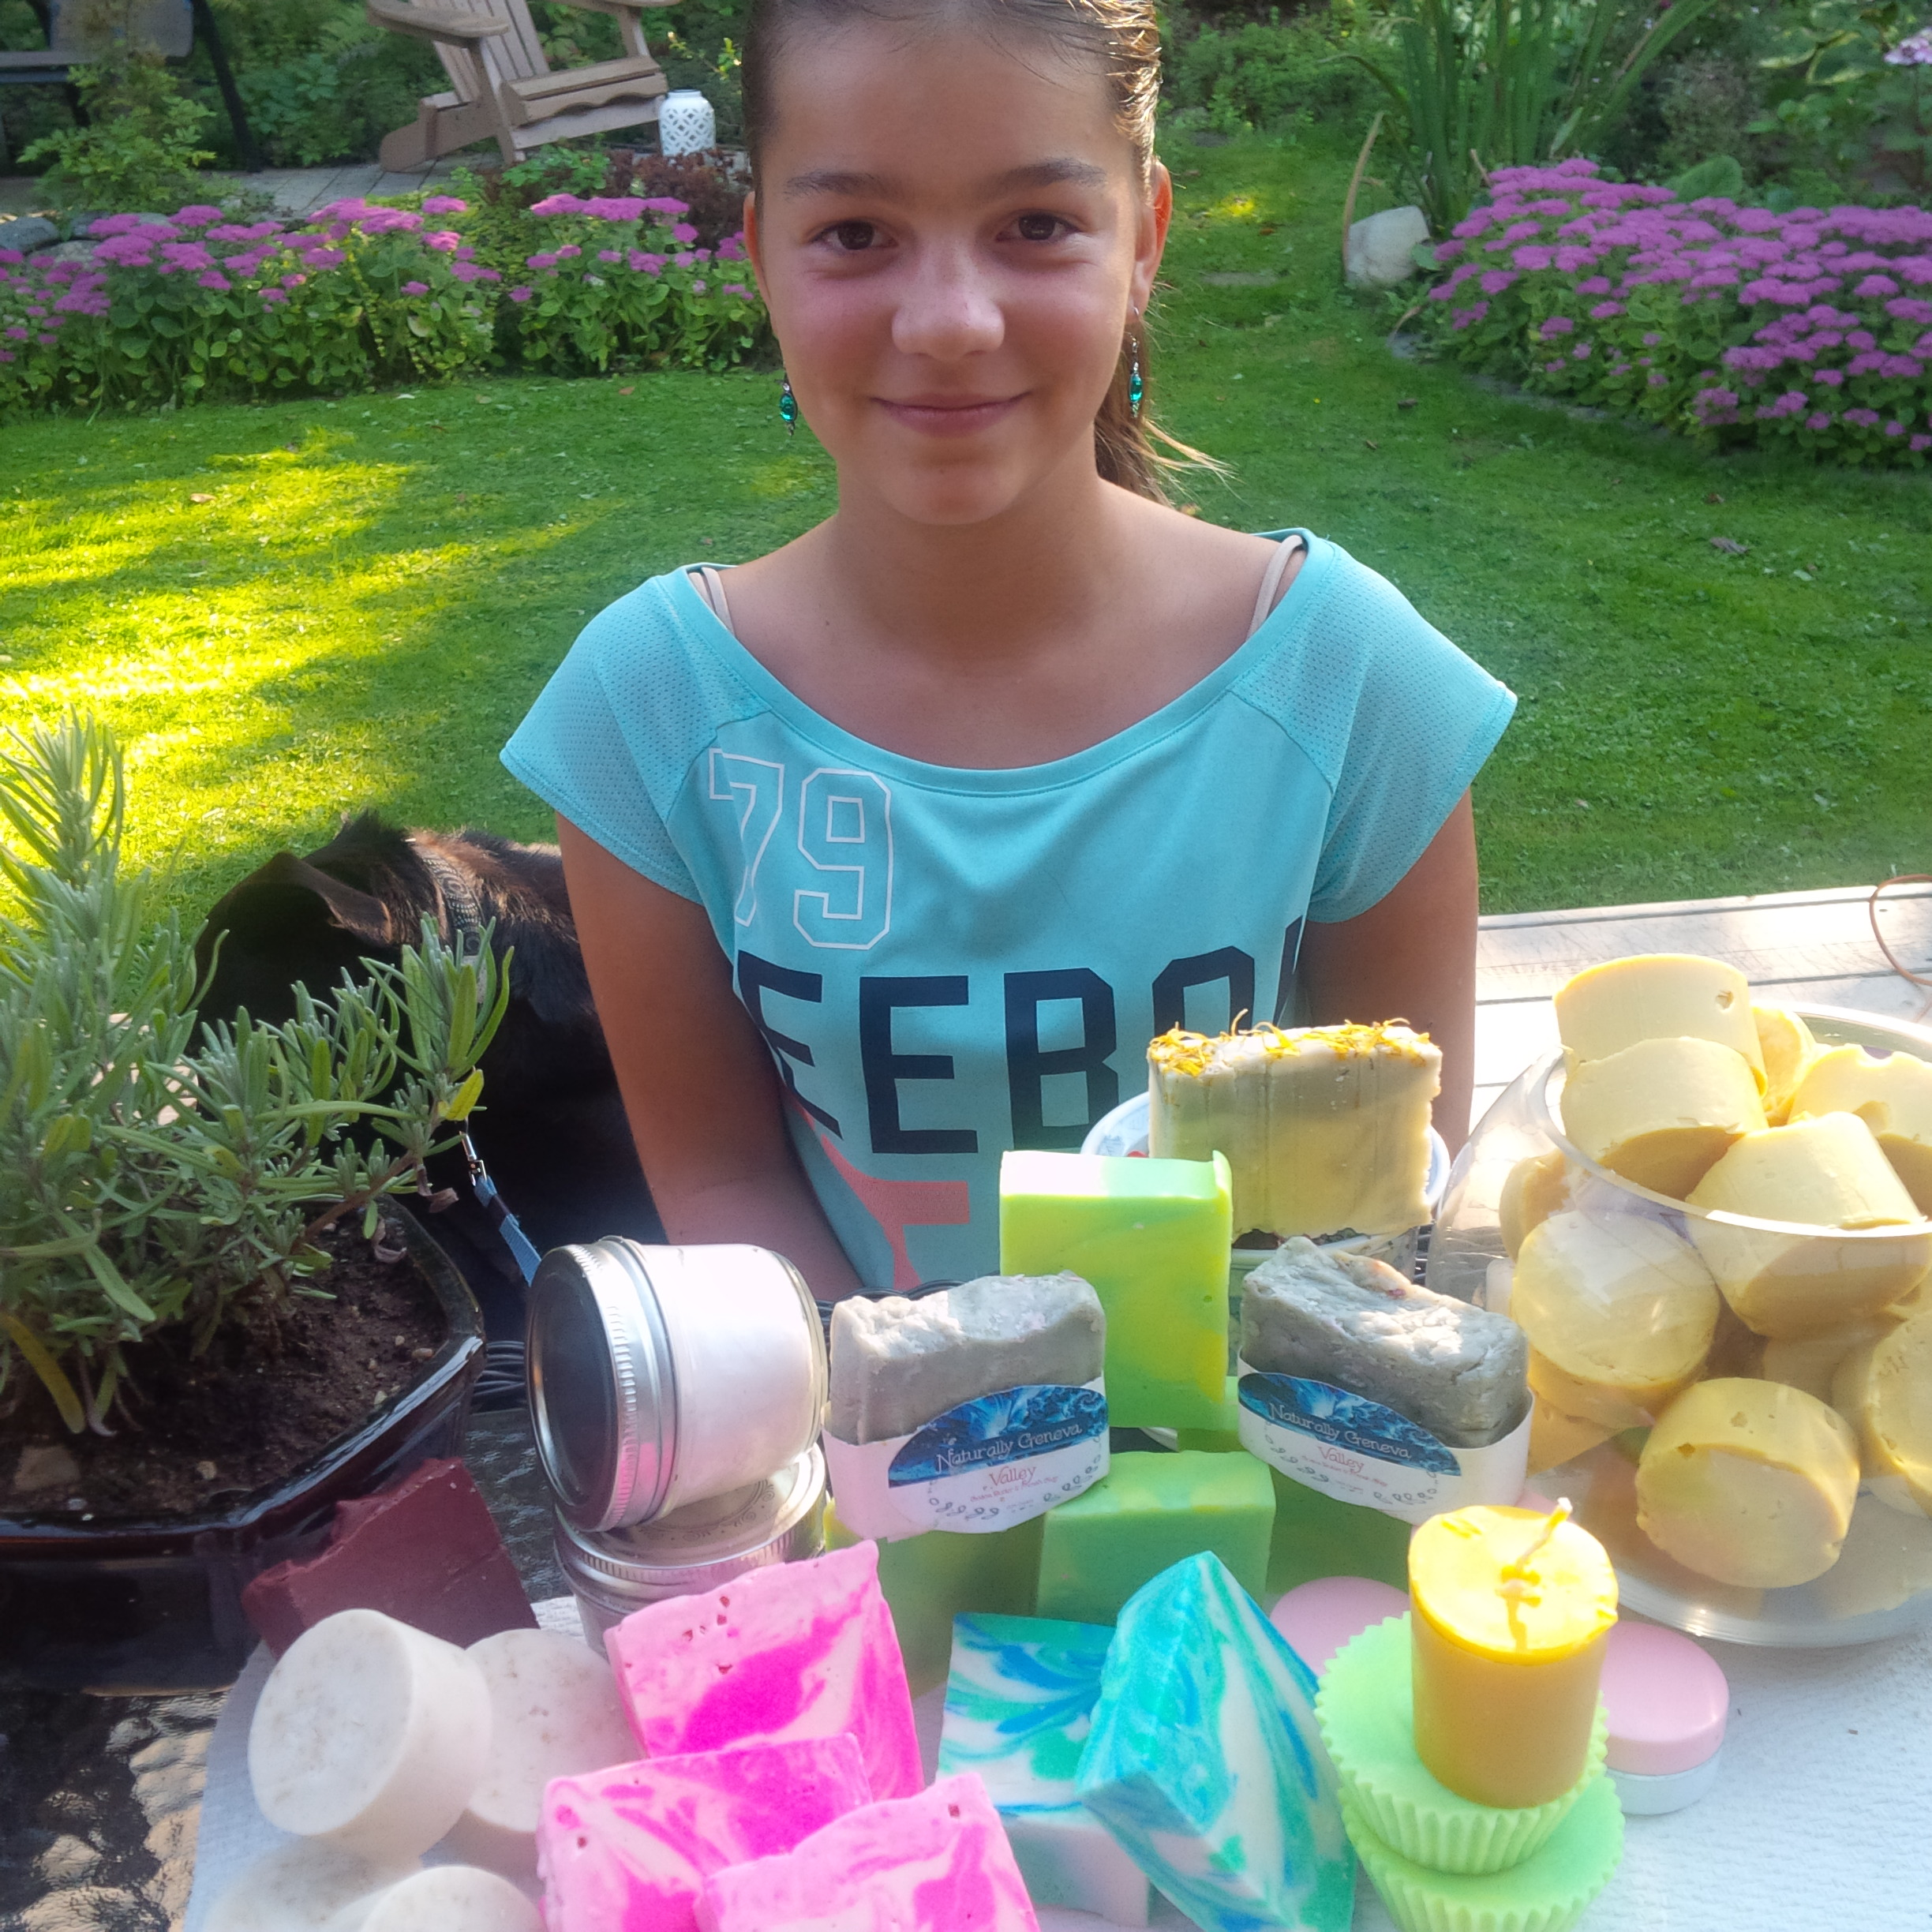 11-year-old geneva is natural crafty and naturally entrepreneurial